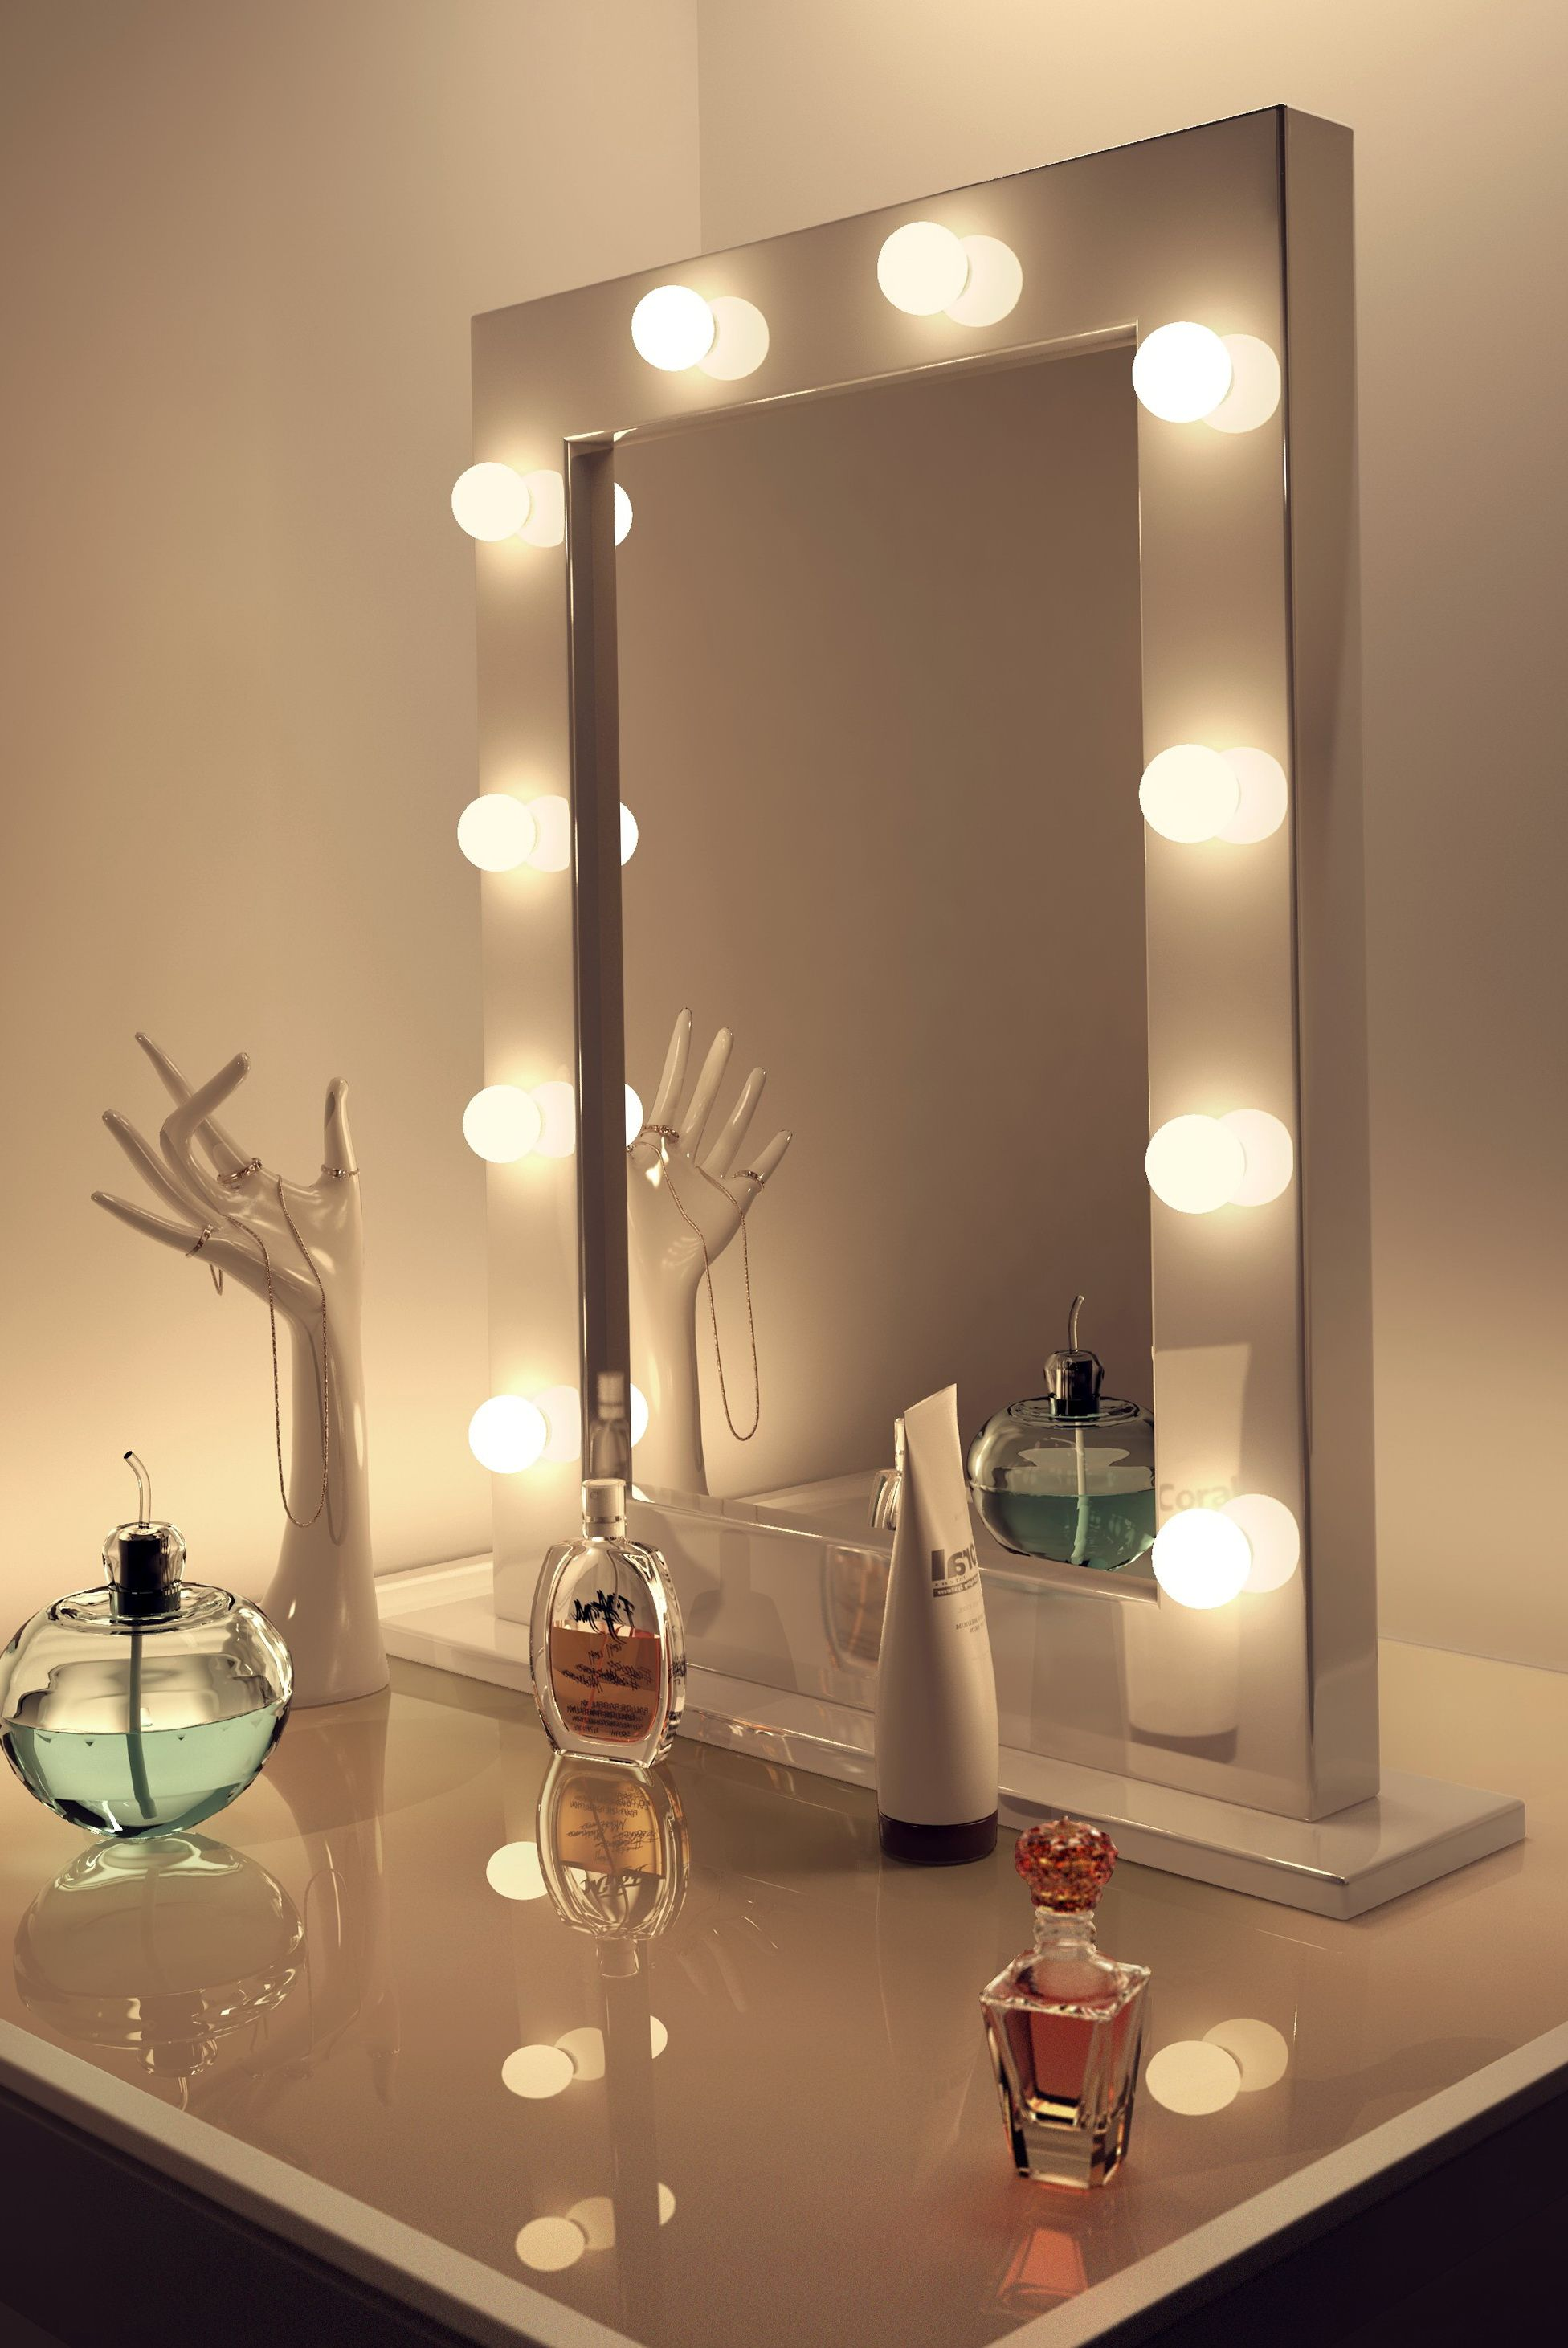 magnification mirror table bathroom plus design for f room stained up small vanity lights lovely with contemporary l wall make and makeup ideas t set white zebra as lighted well m mirrors oval furniture